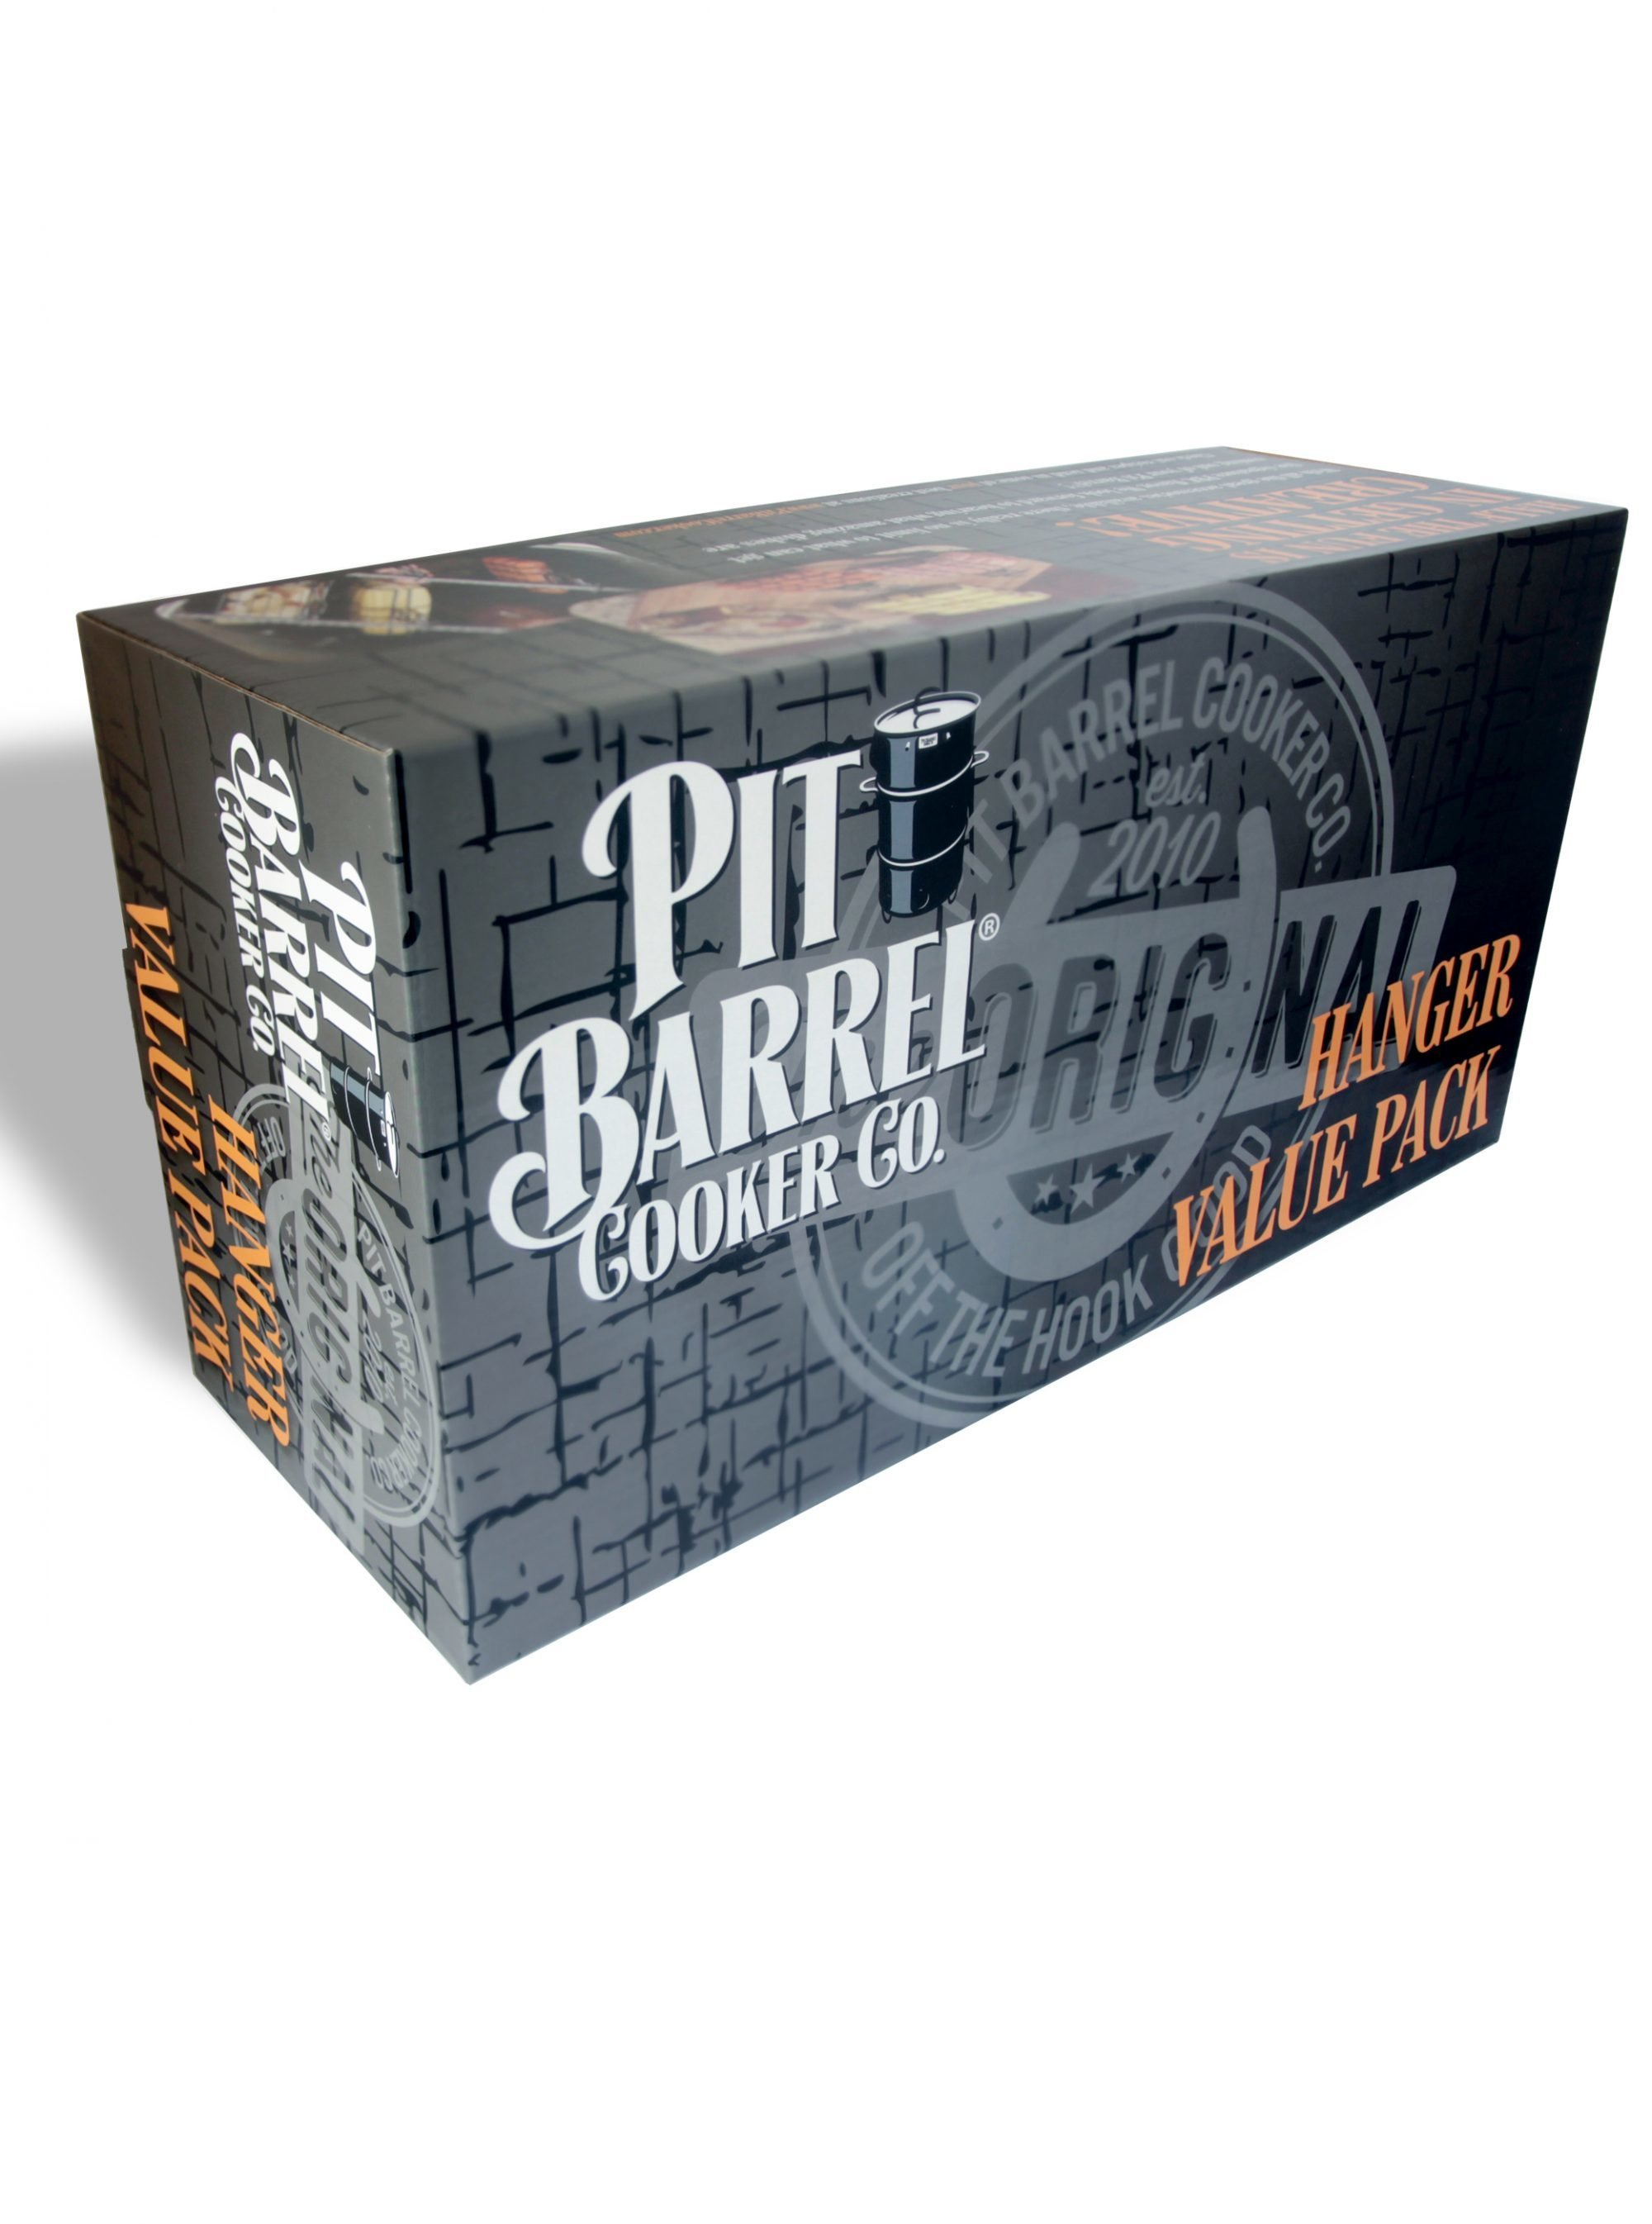 Pit Barrel Cooker- Hanger Value Pack